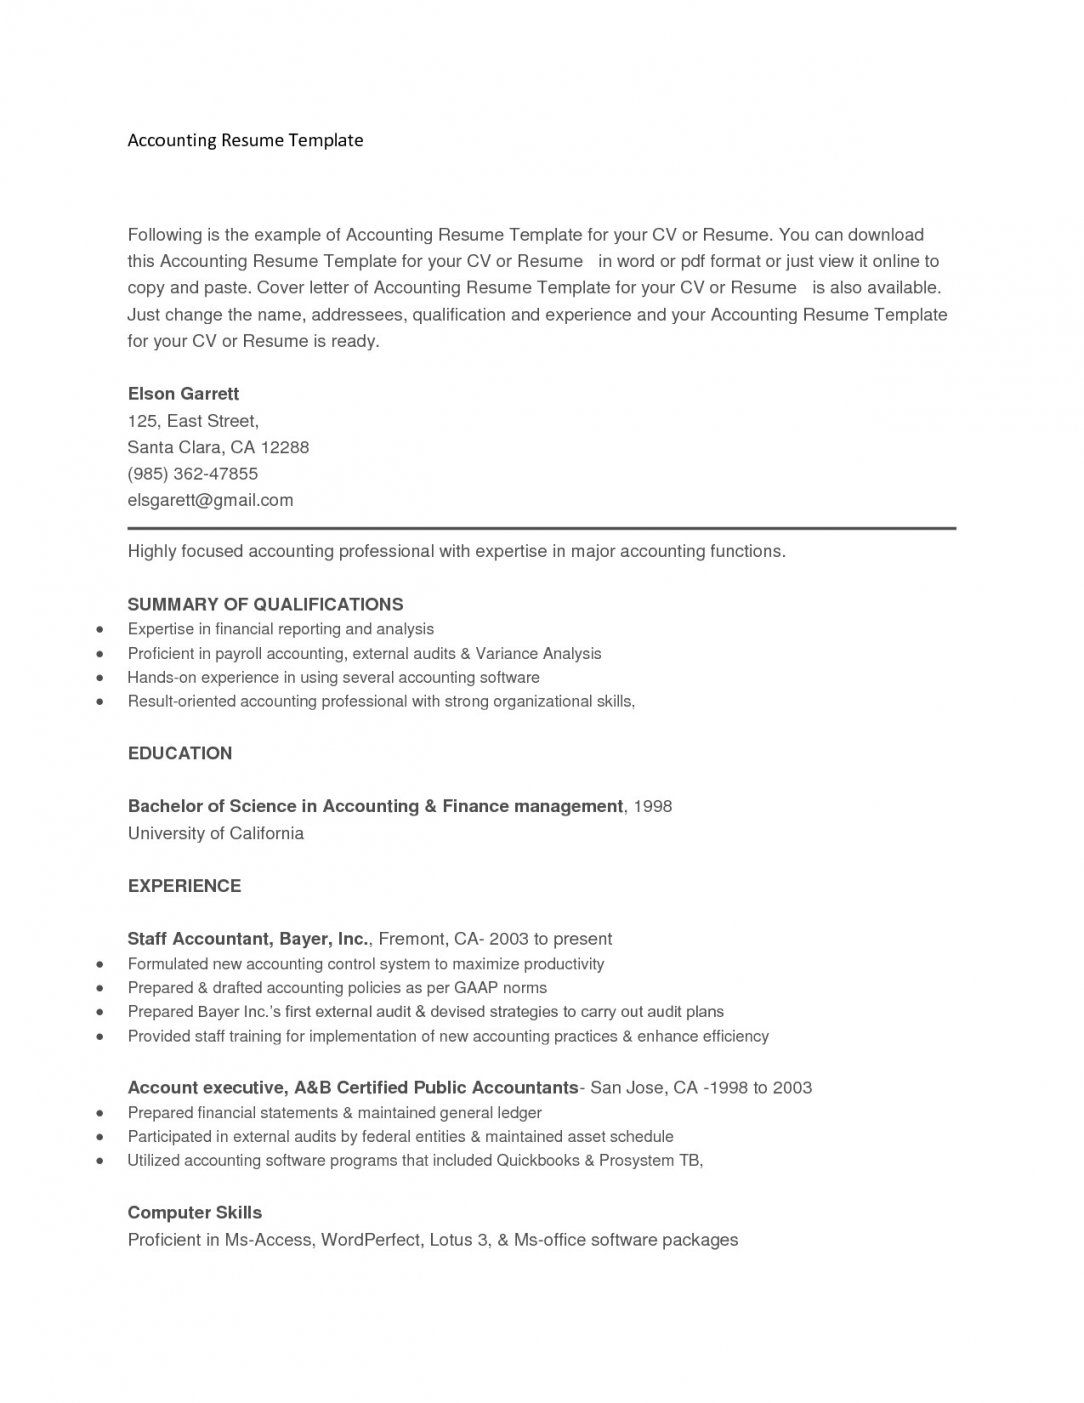 Free Resume Templates Copy And Paste Resume format